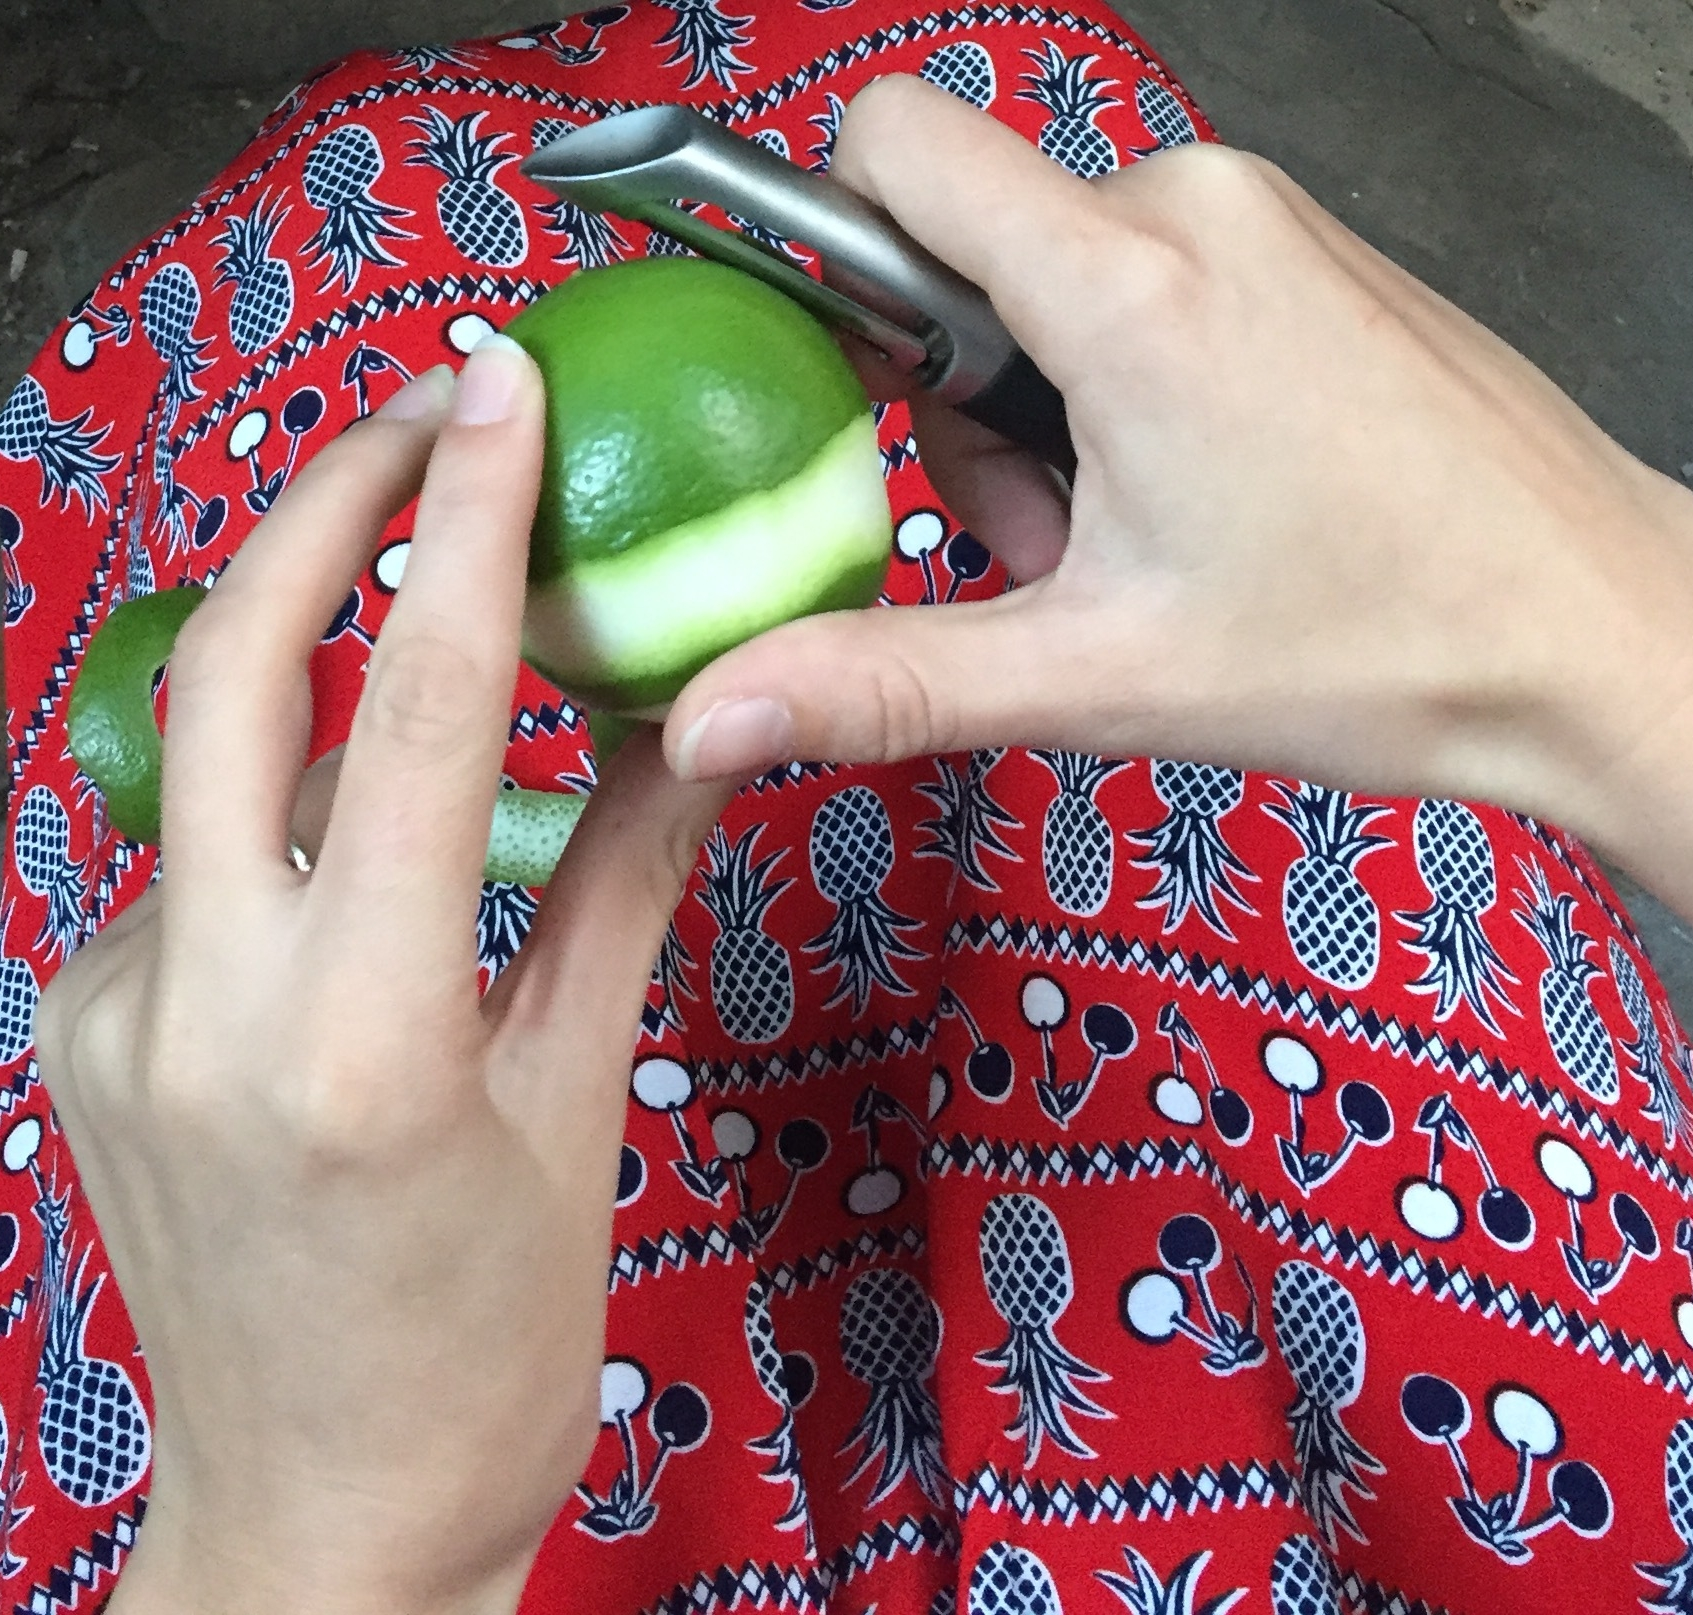 Peel the lime - Try to get only the green part of the skin, avoiding the white part which can cause bitterness